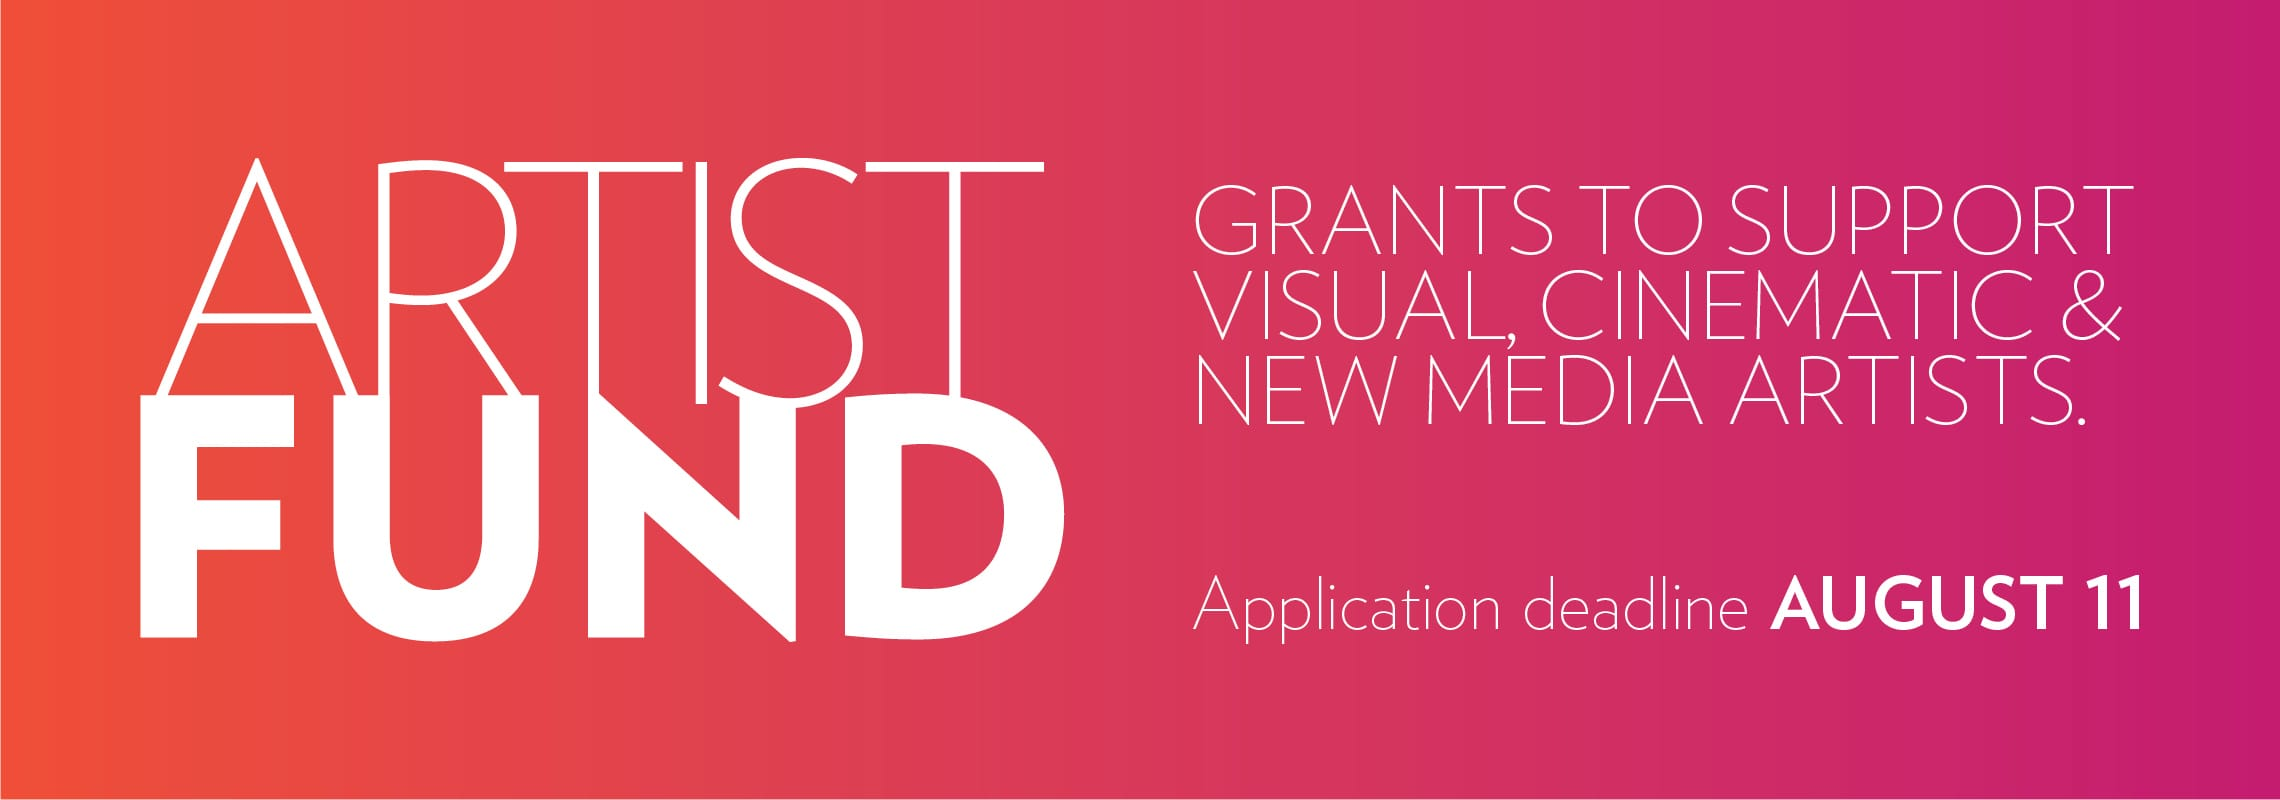 Artist Fund: Grants to support visual, cinematic, and new media artists. Application deadline August 11.